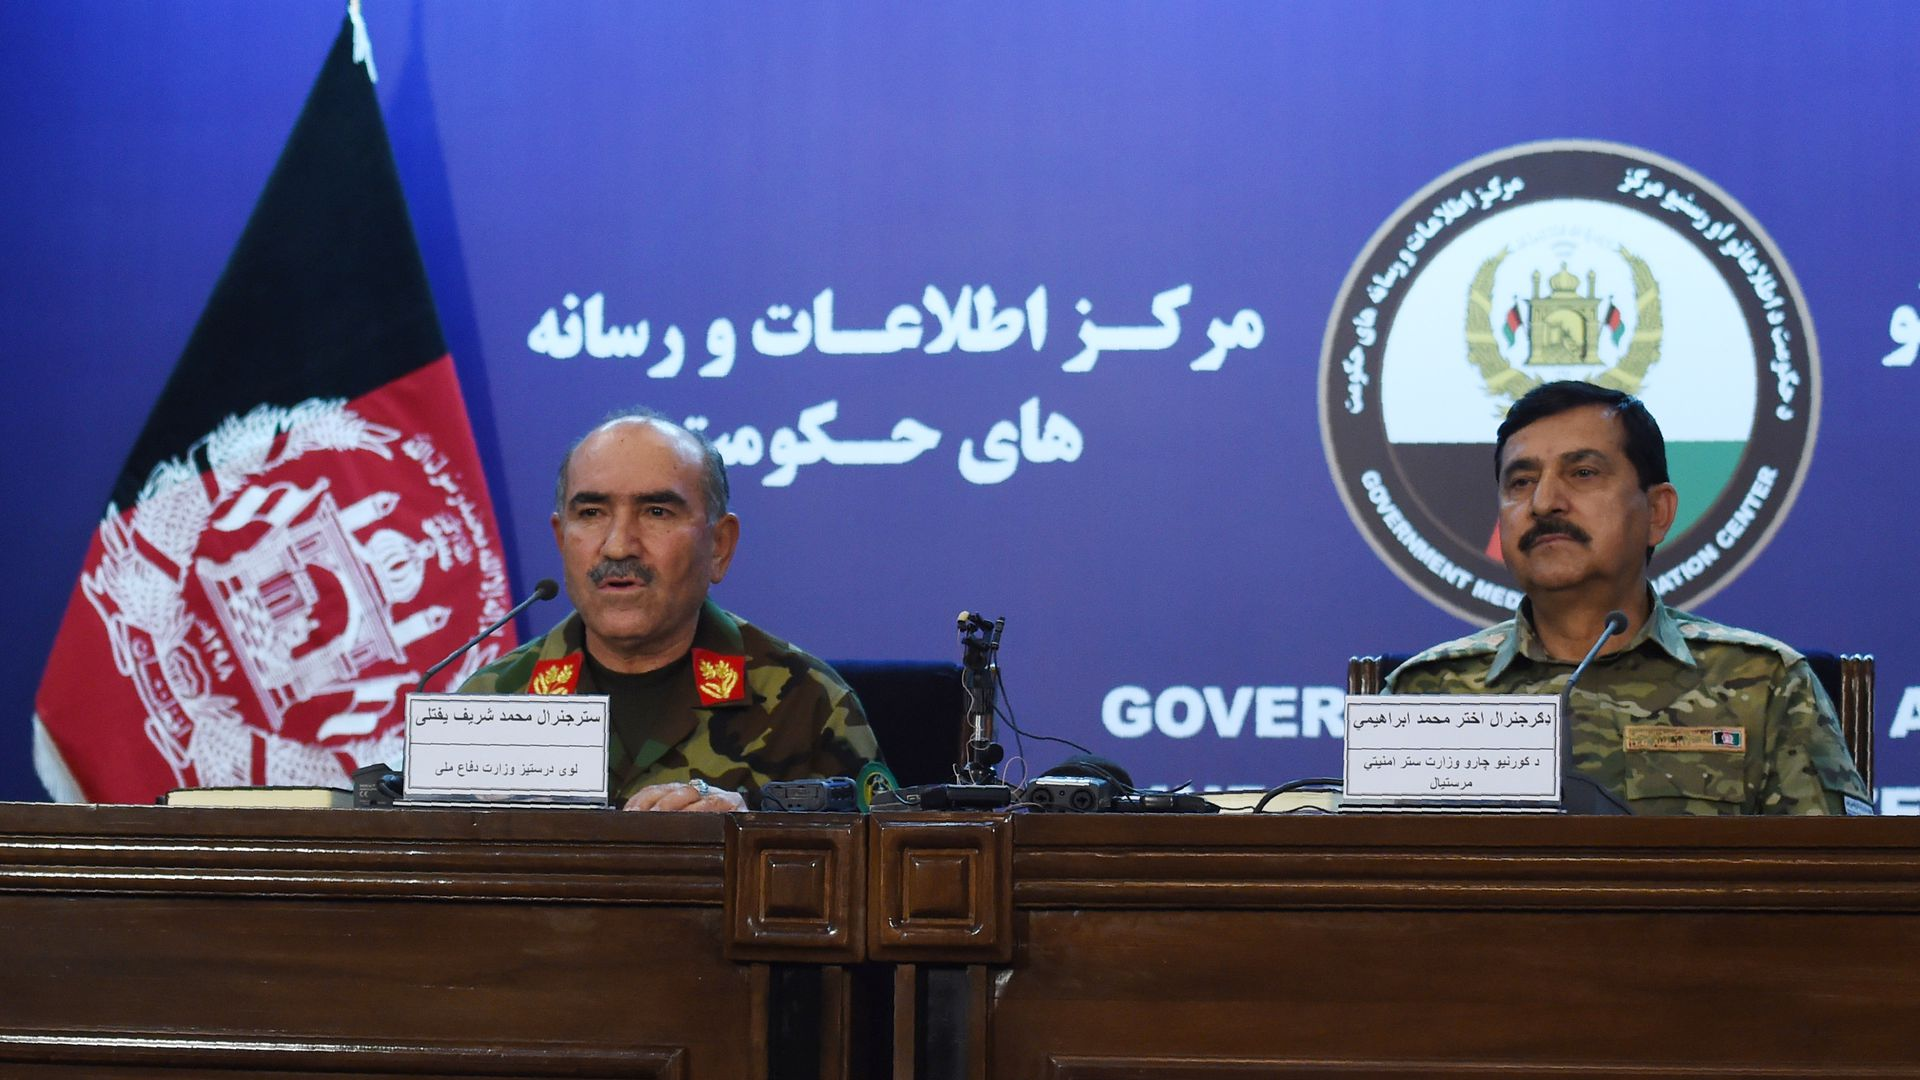 Afghan Army Chief of Staff, General Sharif Yaftali, and Deputy Minister, General Akhtar Mohammad Ibrahimi, during a press conference in Kabul on June 7, 2018.